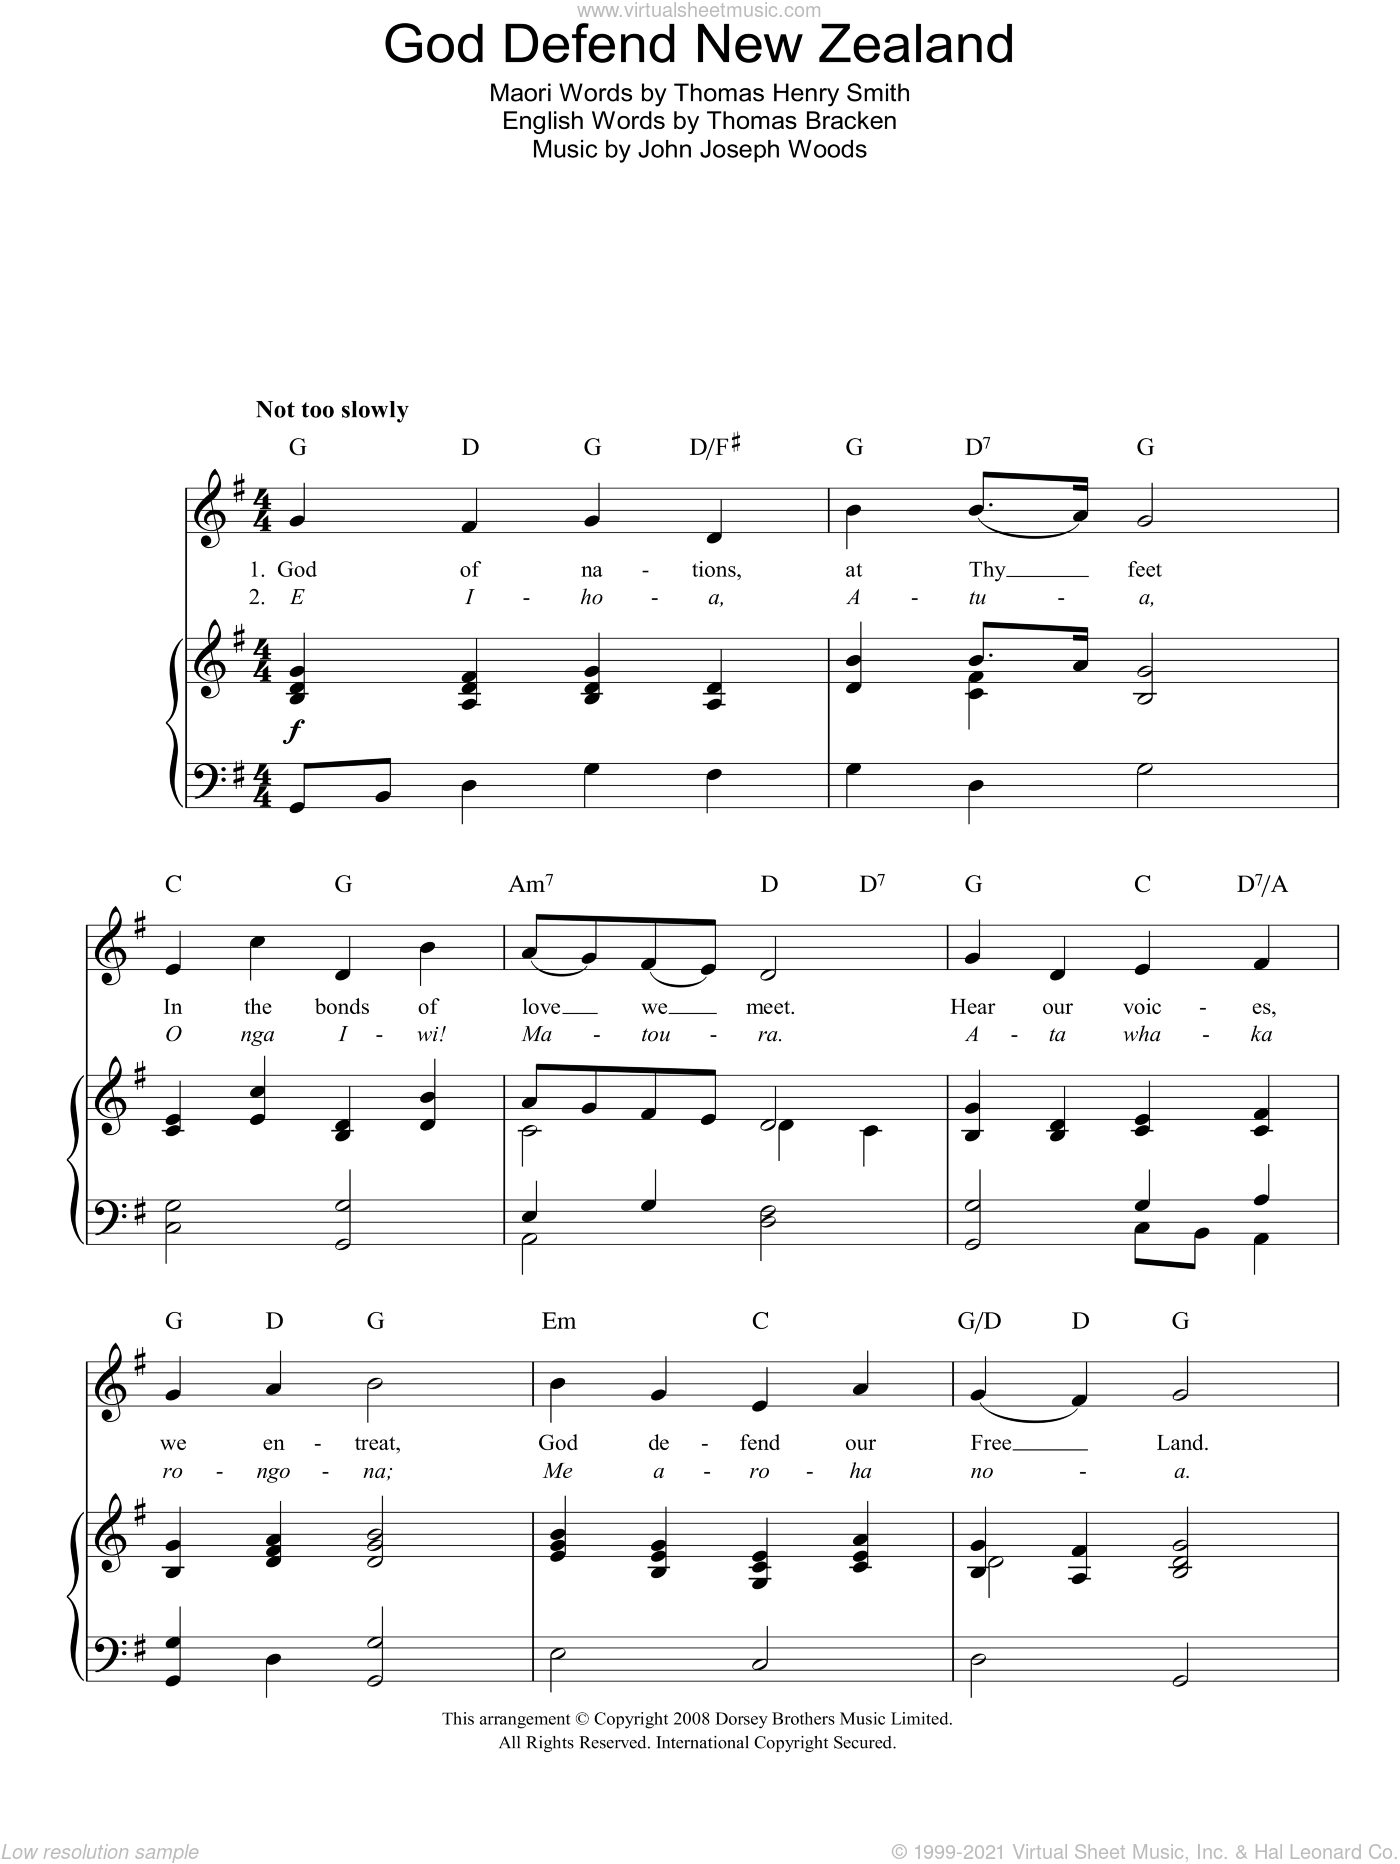 God Defend New Zealand (New Zealand National Anthem) sheet music for voice, piano or guitar by Tim Smith